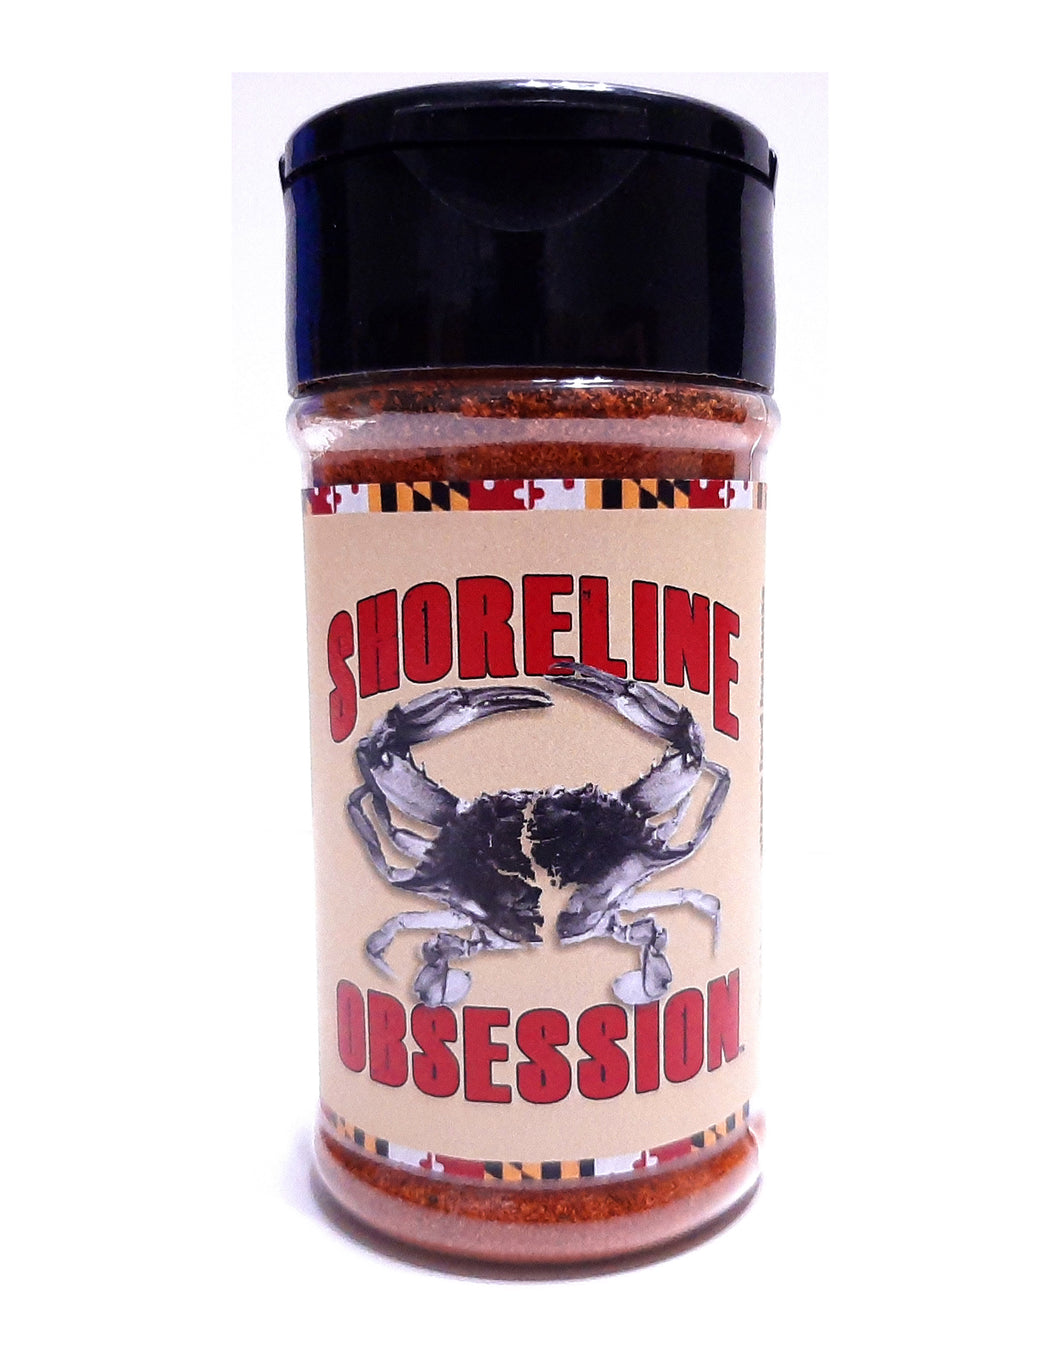 Shoreline Obsession Seasoning (3.5 oz bottle)